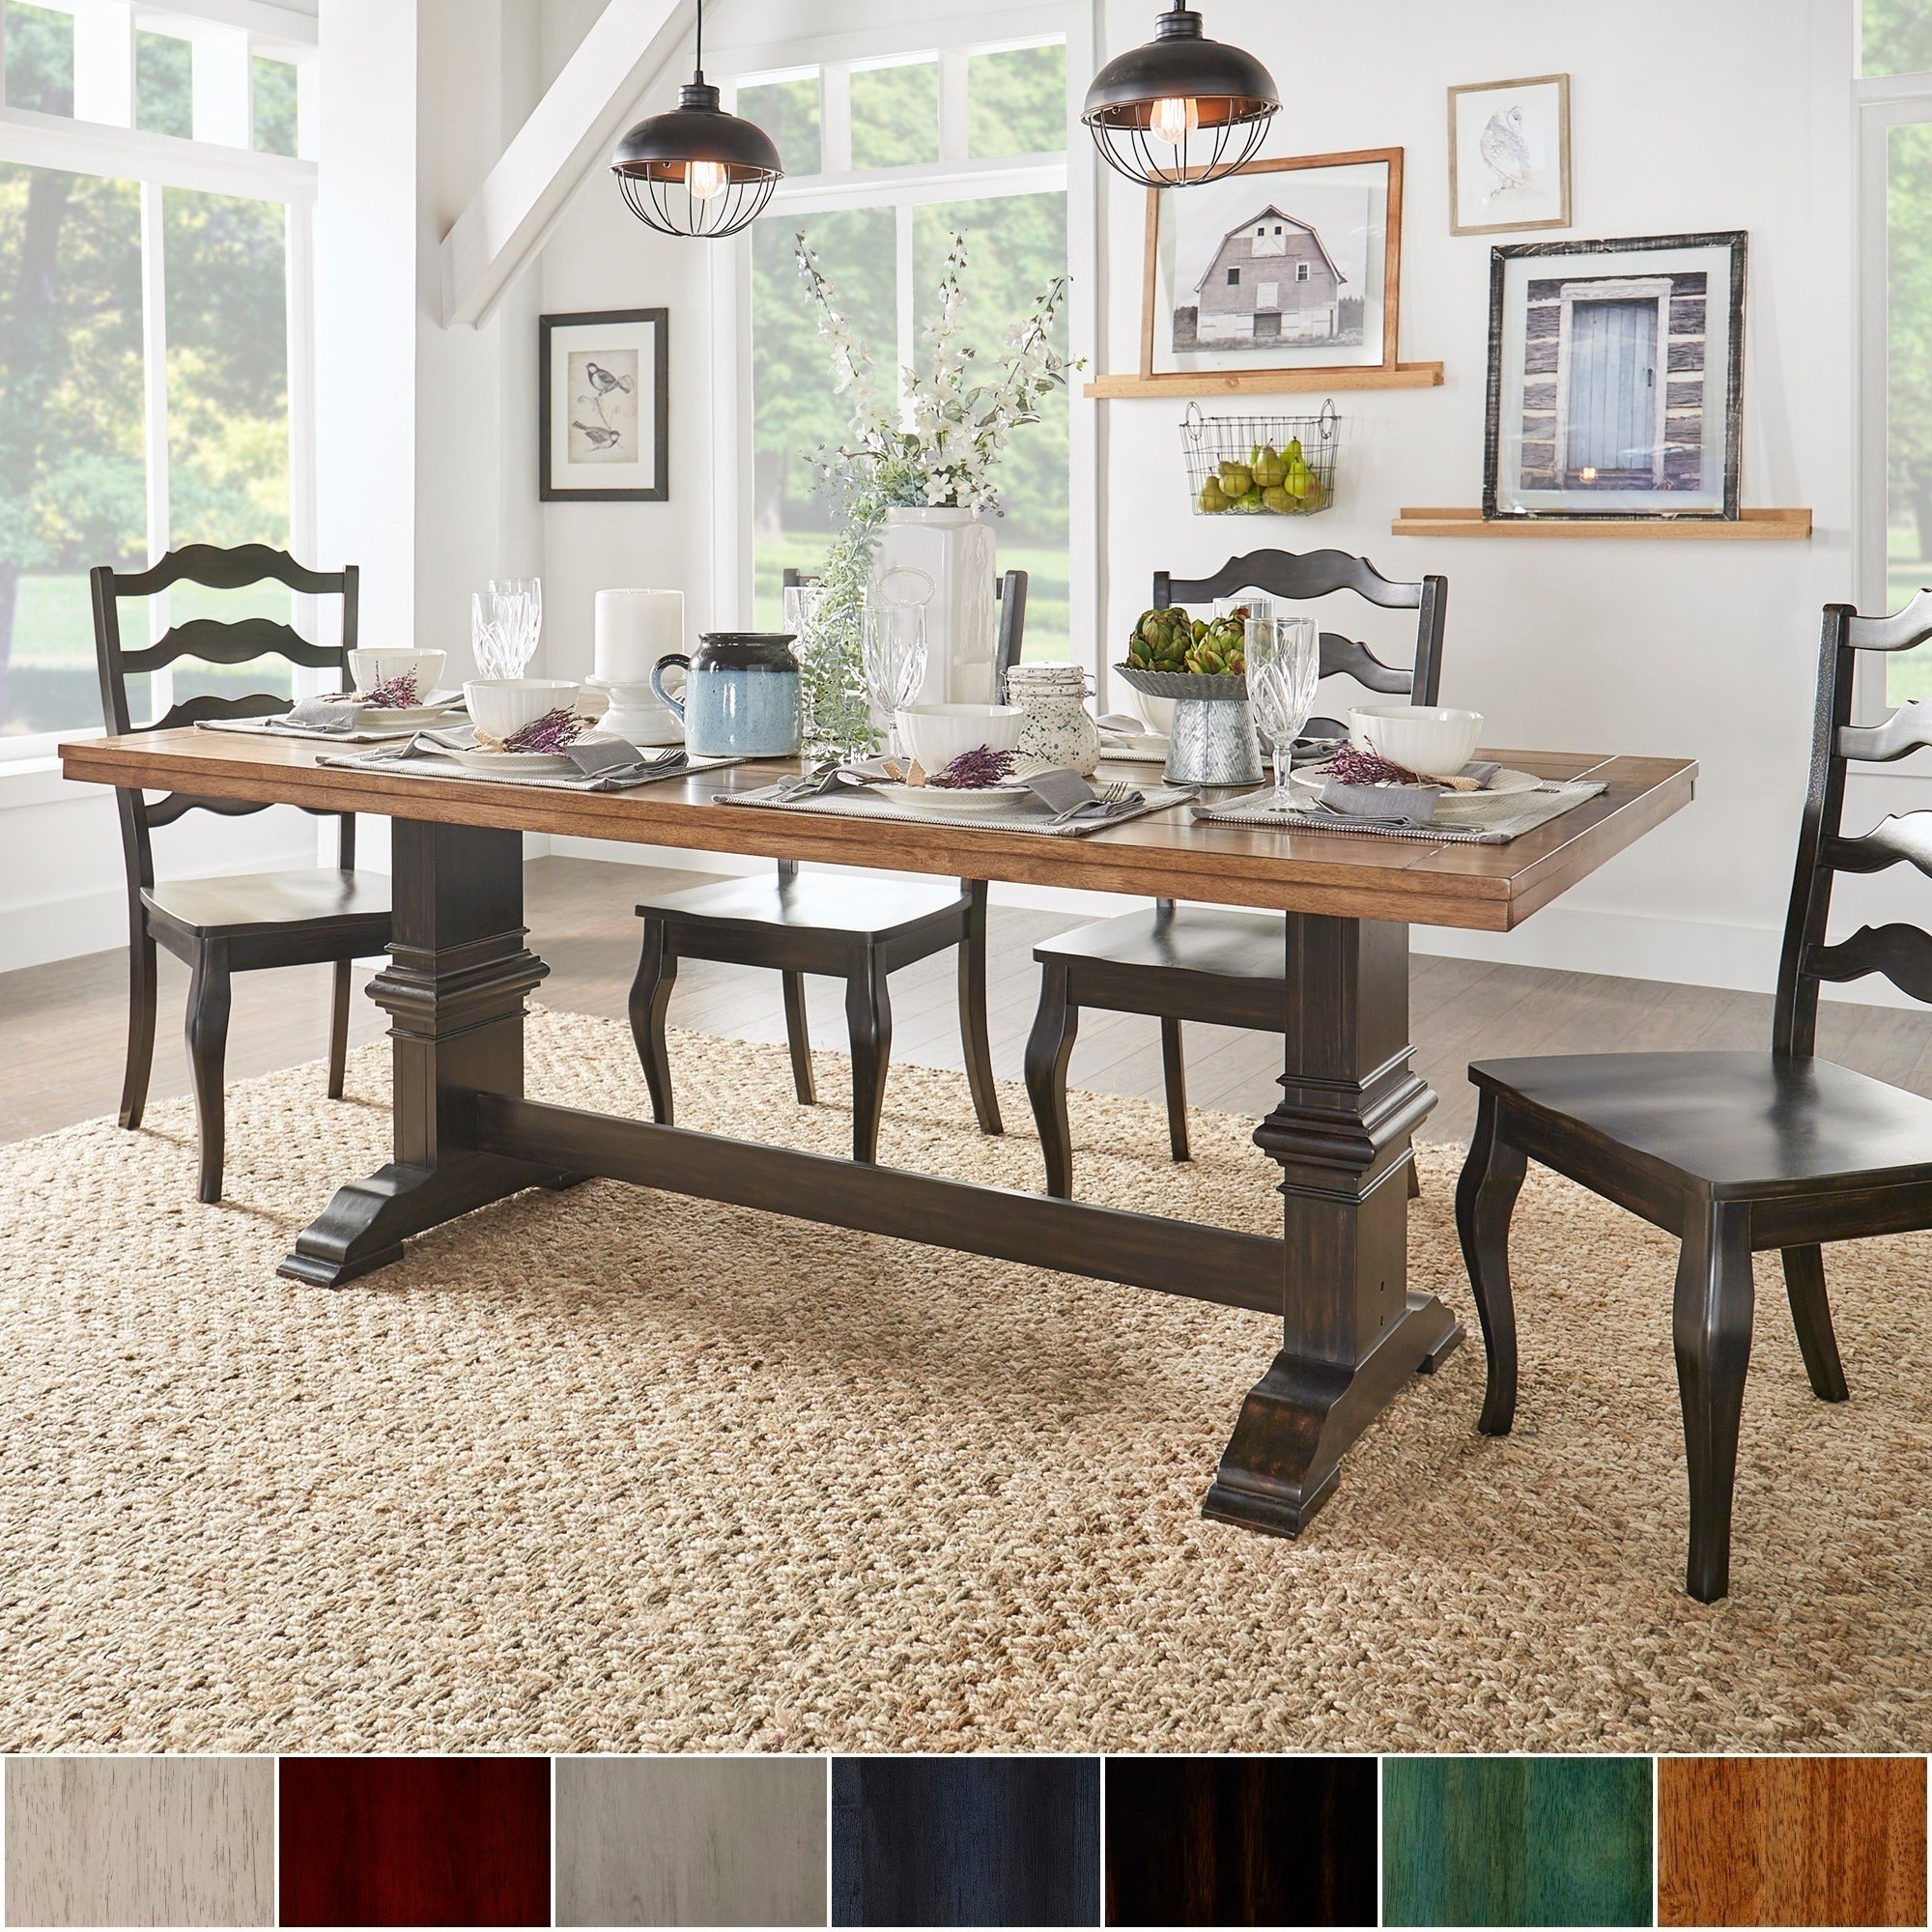 Well Liked Wood Top Dining Tables With Details About Eleanor Two Tone Rectangular Solid Wood Top Dining Table By (View 4 of 30)